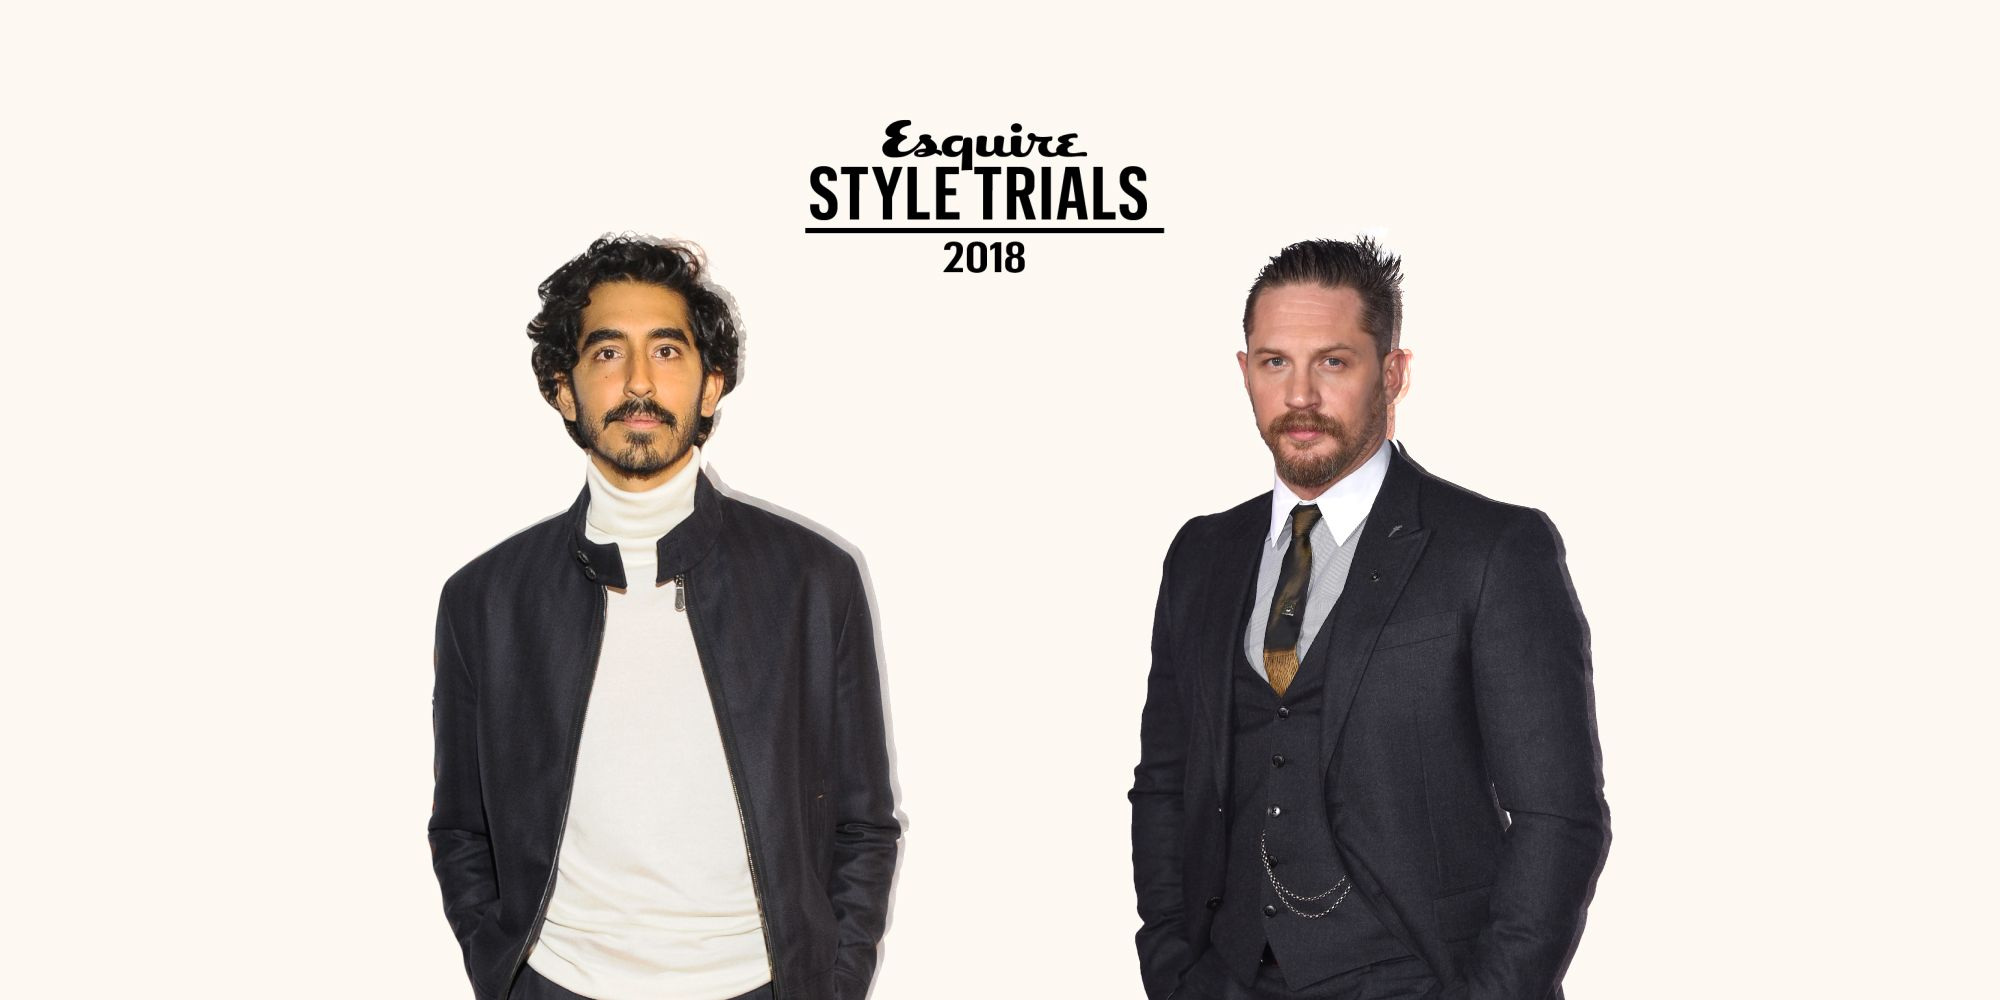 Who Is The Most Stylish Man Of 2018? Quarter Finals: Dev Patel vs. Tom Hardy